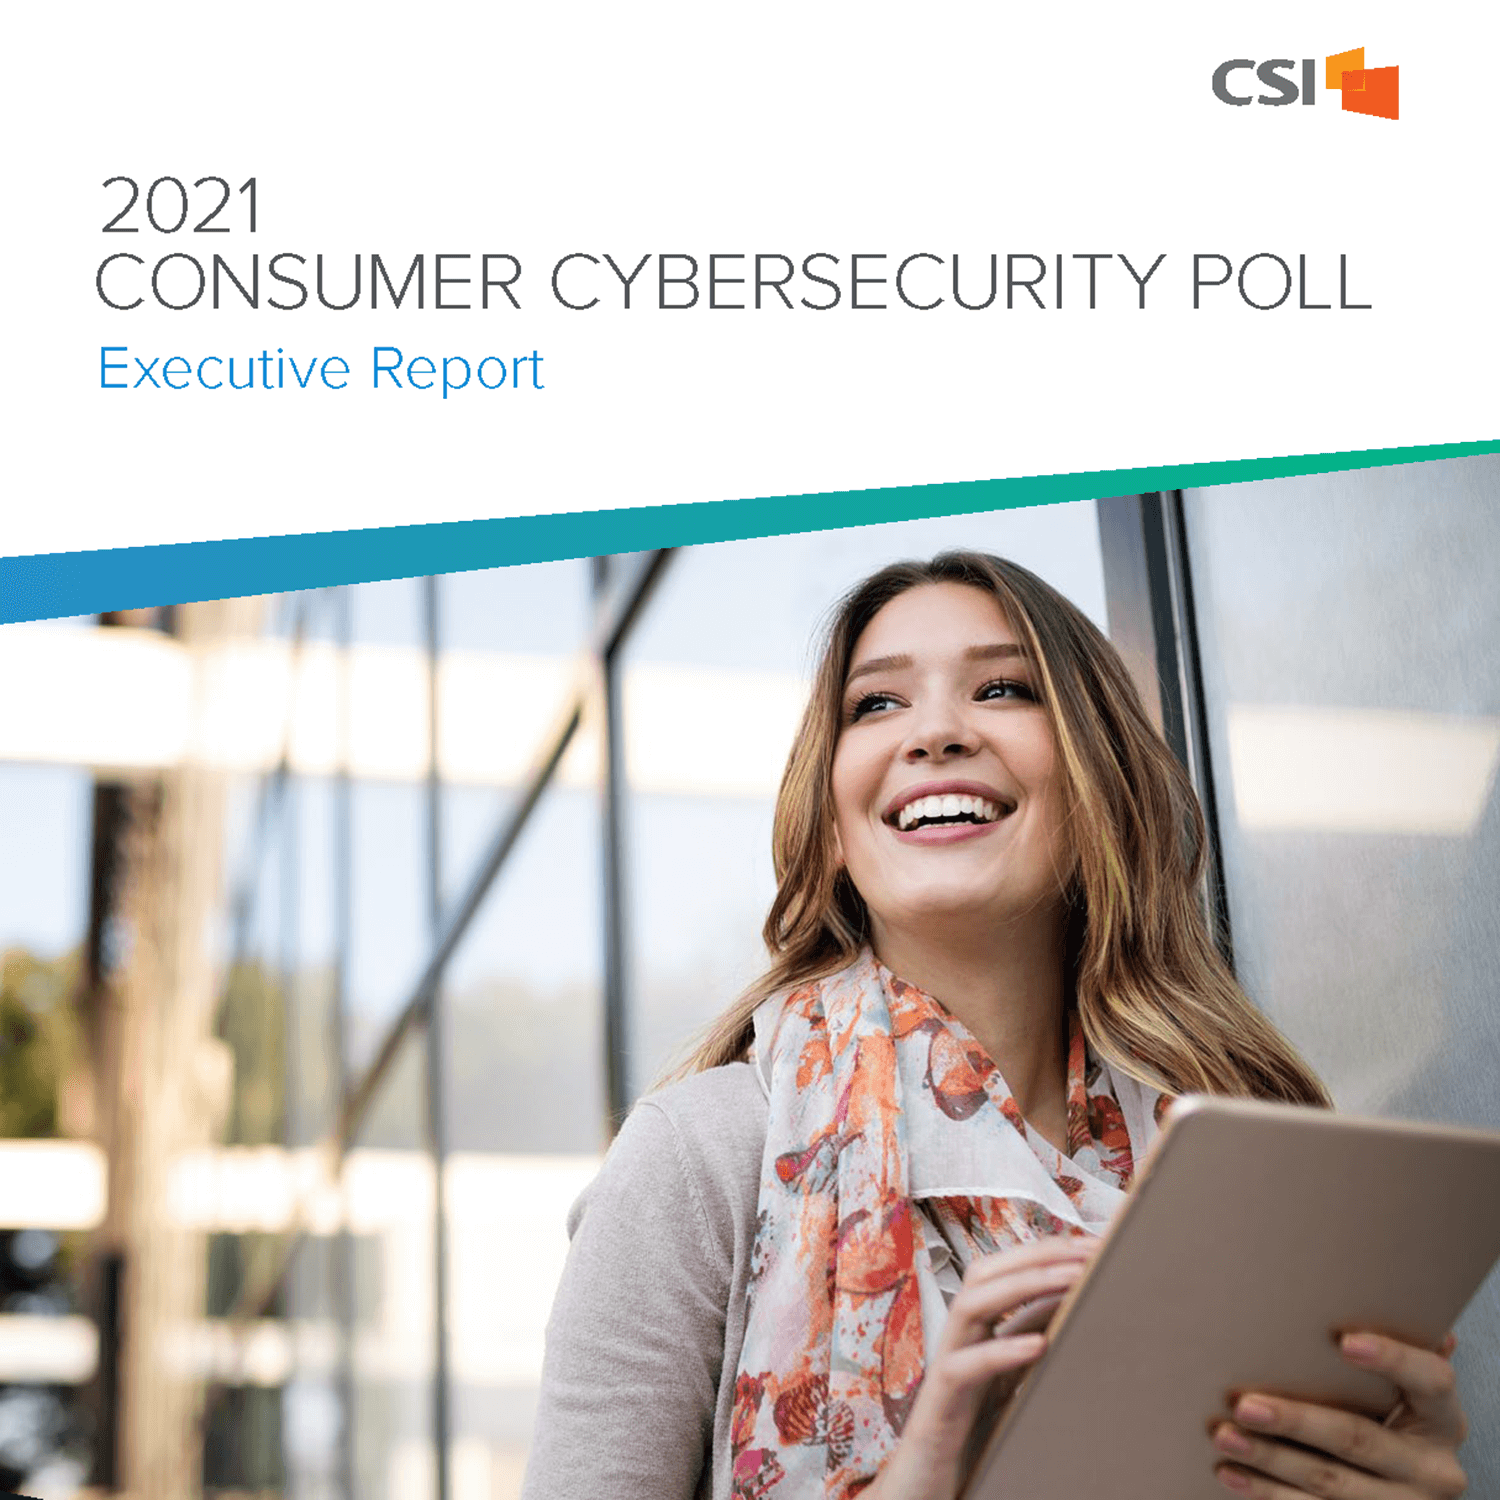 2021 Consumer Cybersecurity Poll